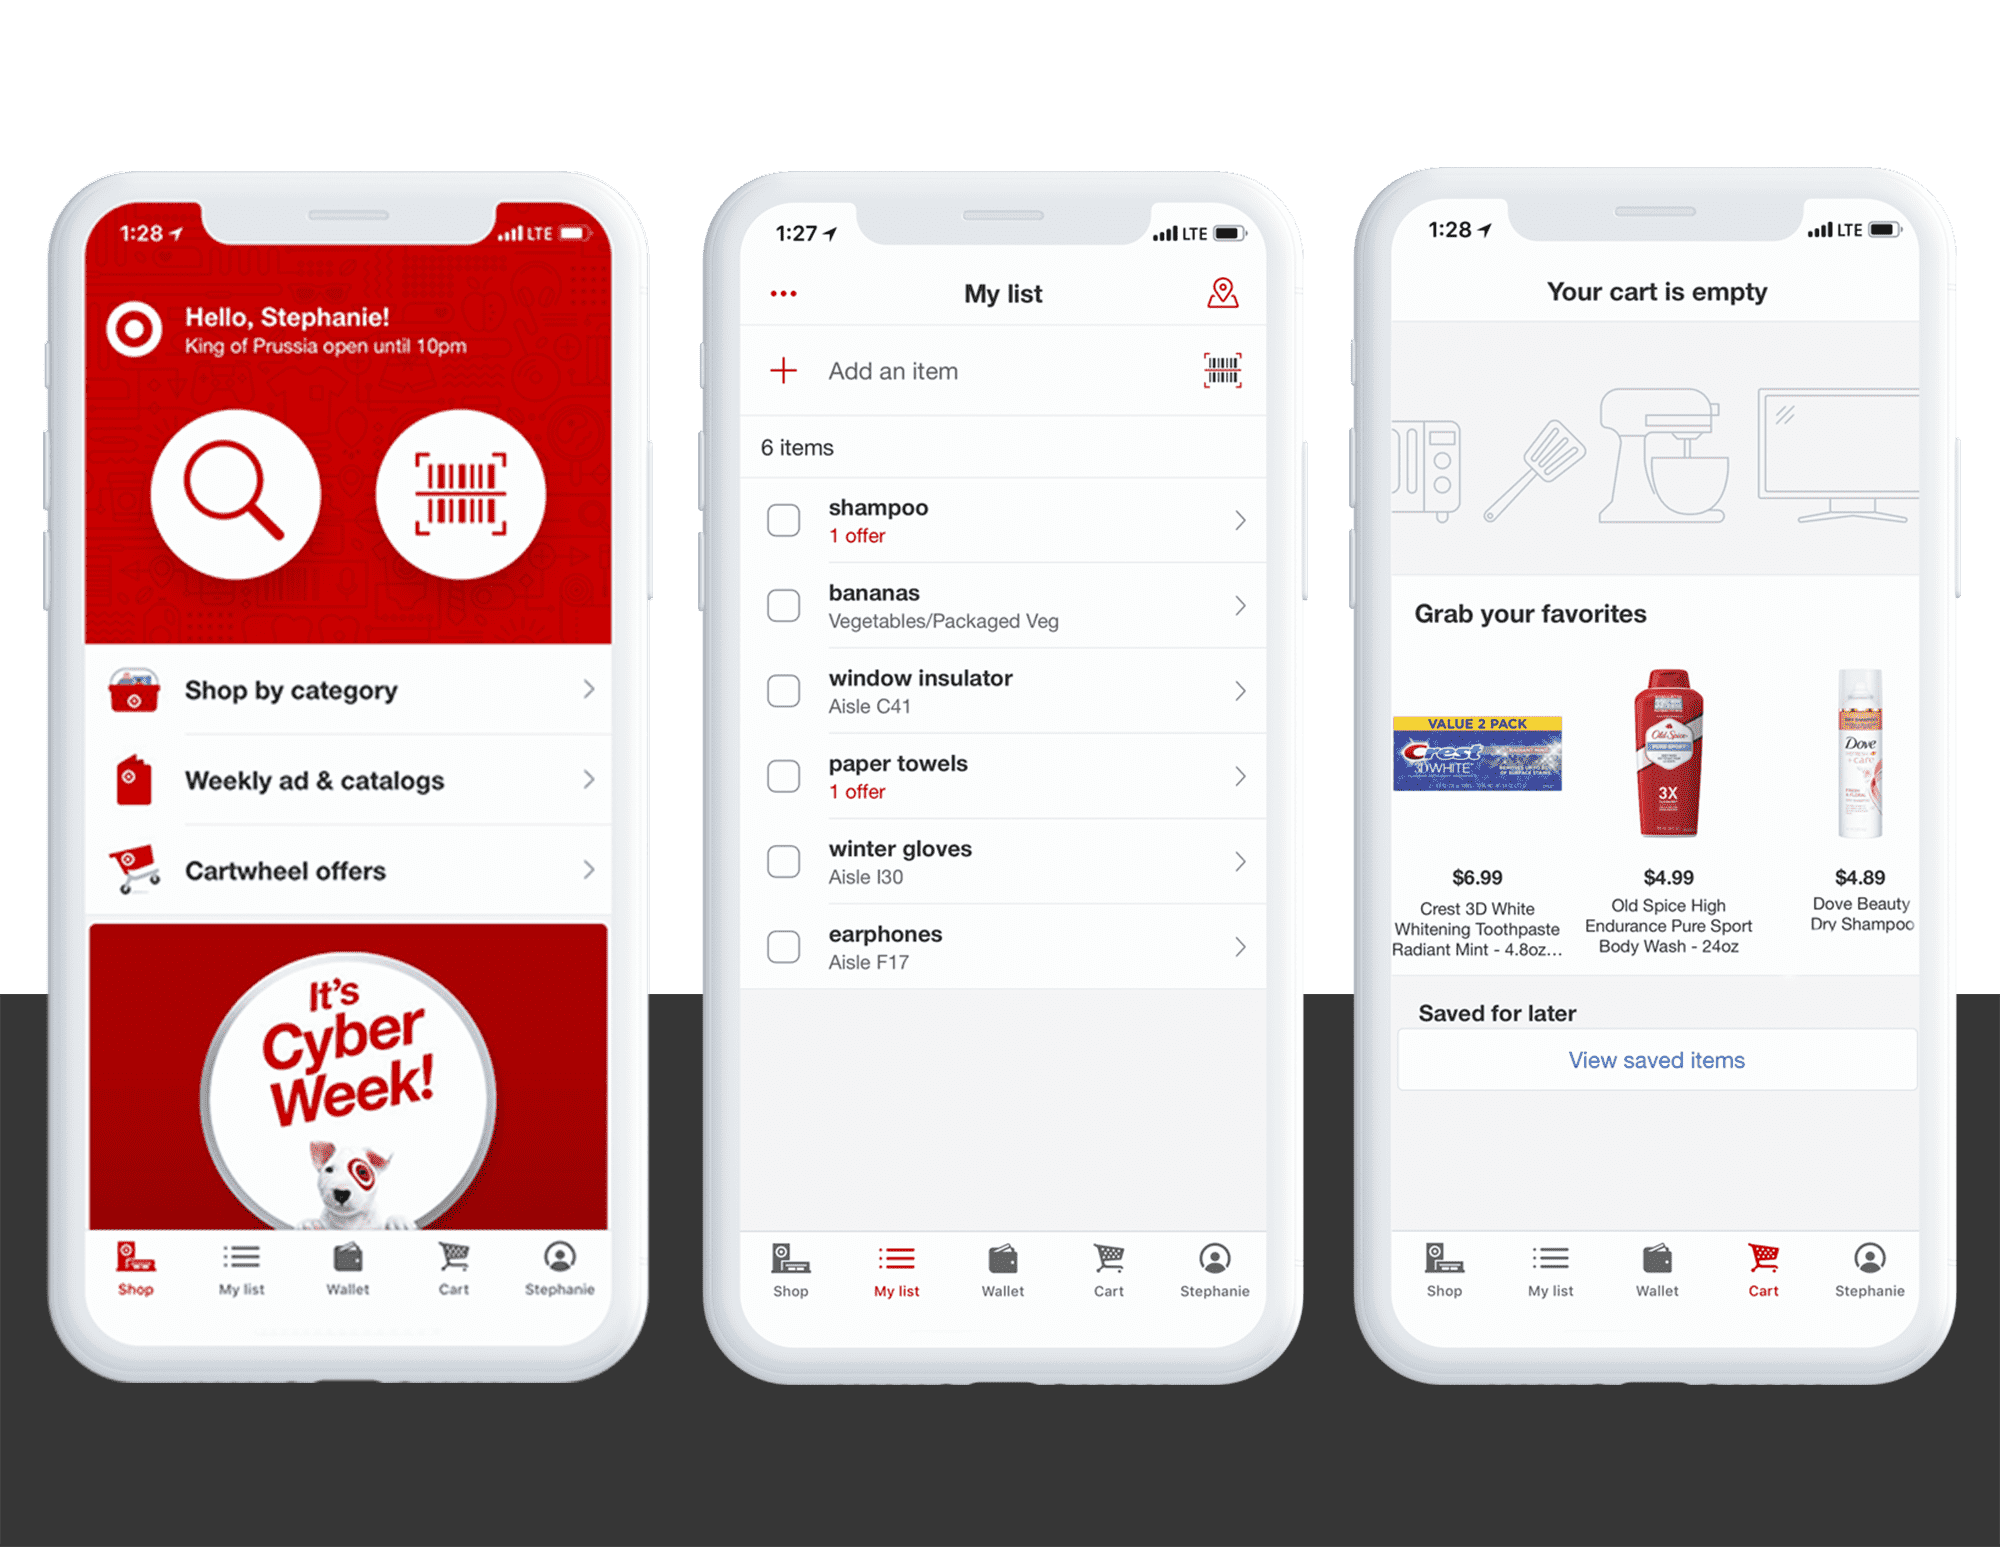 iPhone app interface for Target omnichannel customer experience